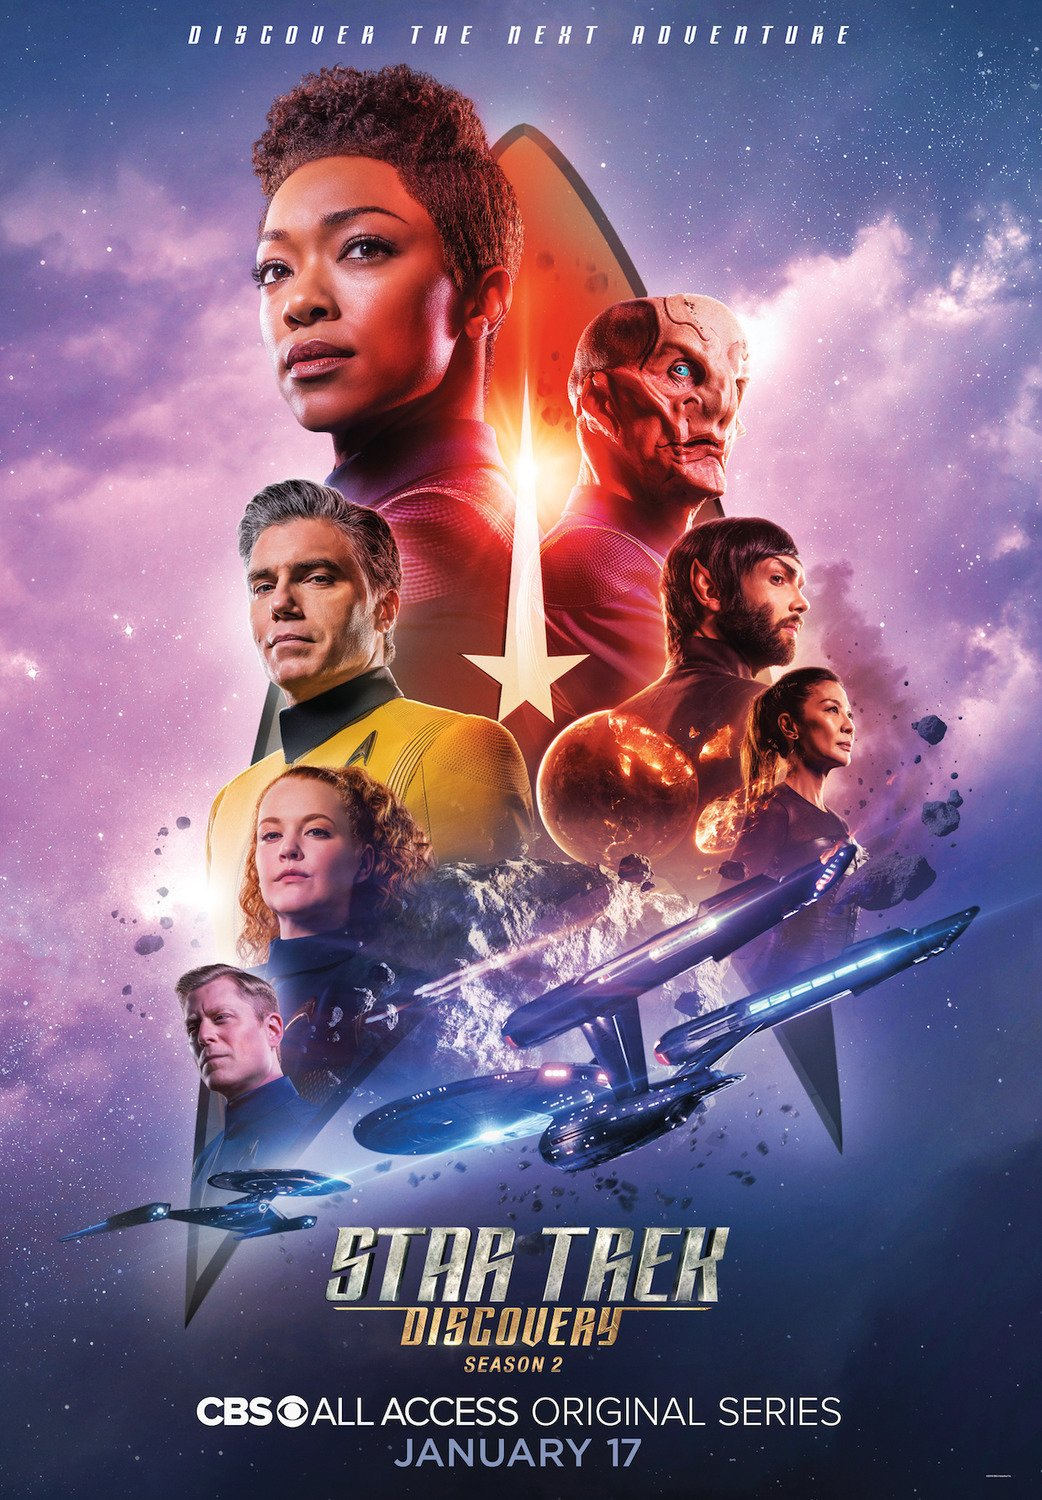 Star Trek Discovery (2019) Season 2 EP.1